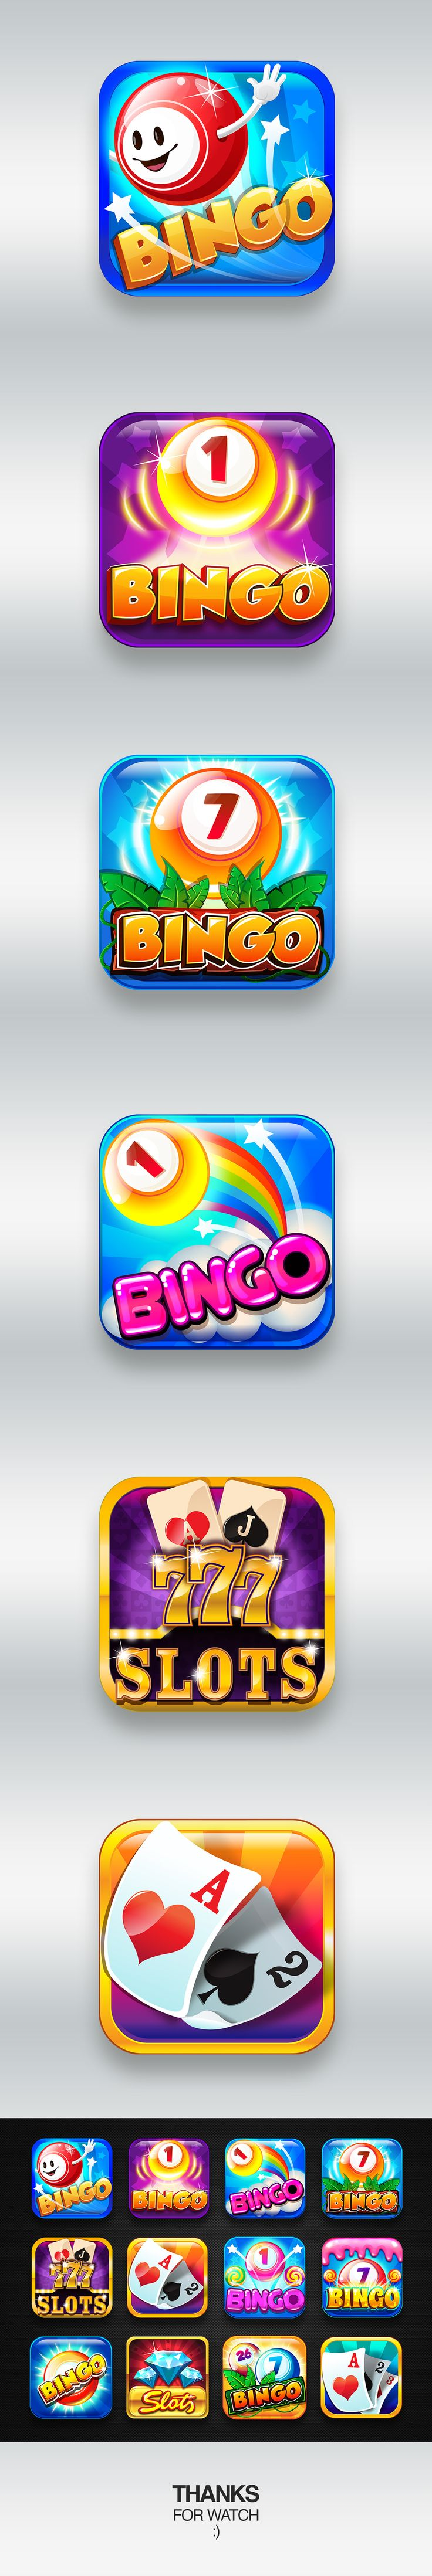 Mobile Game Icons Design on Behance